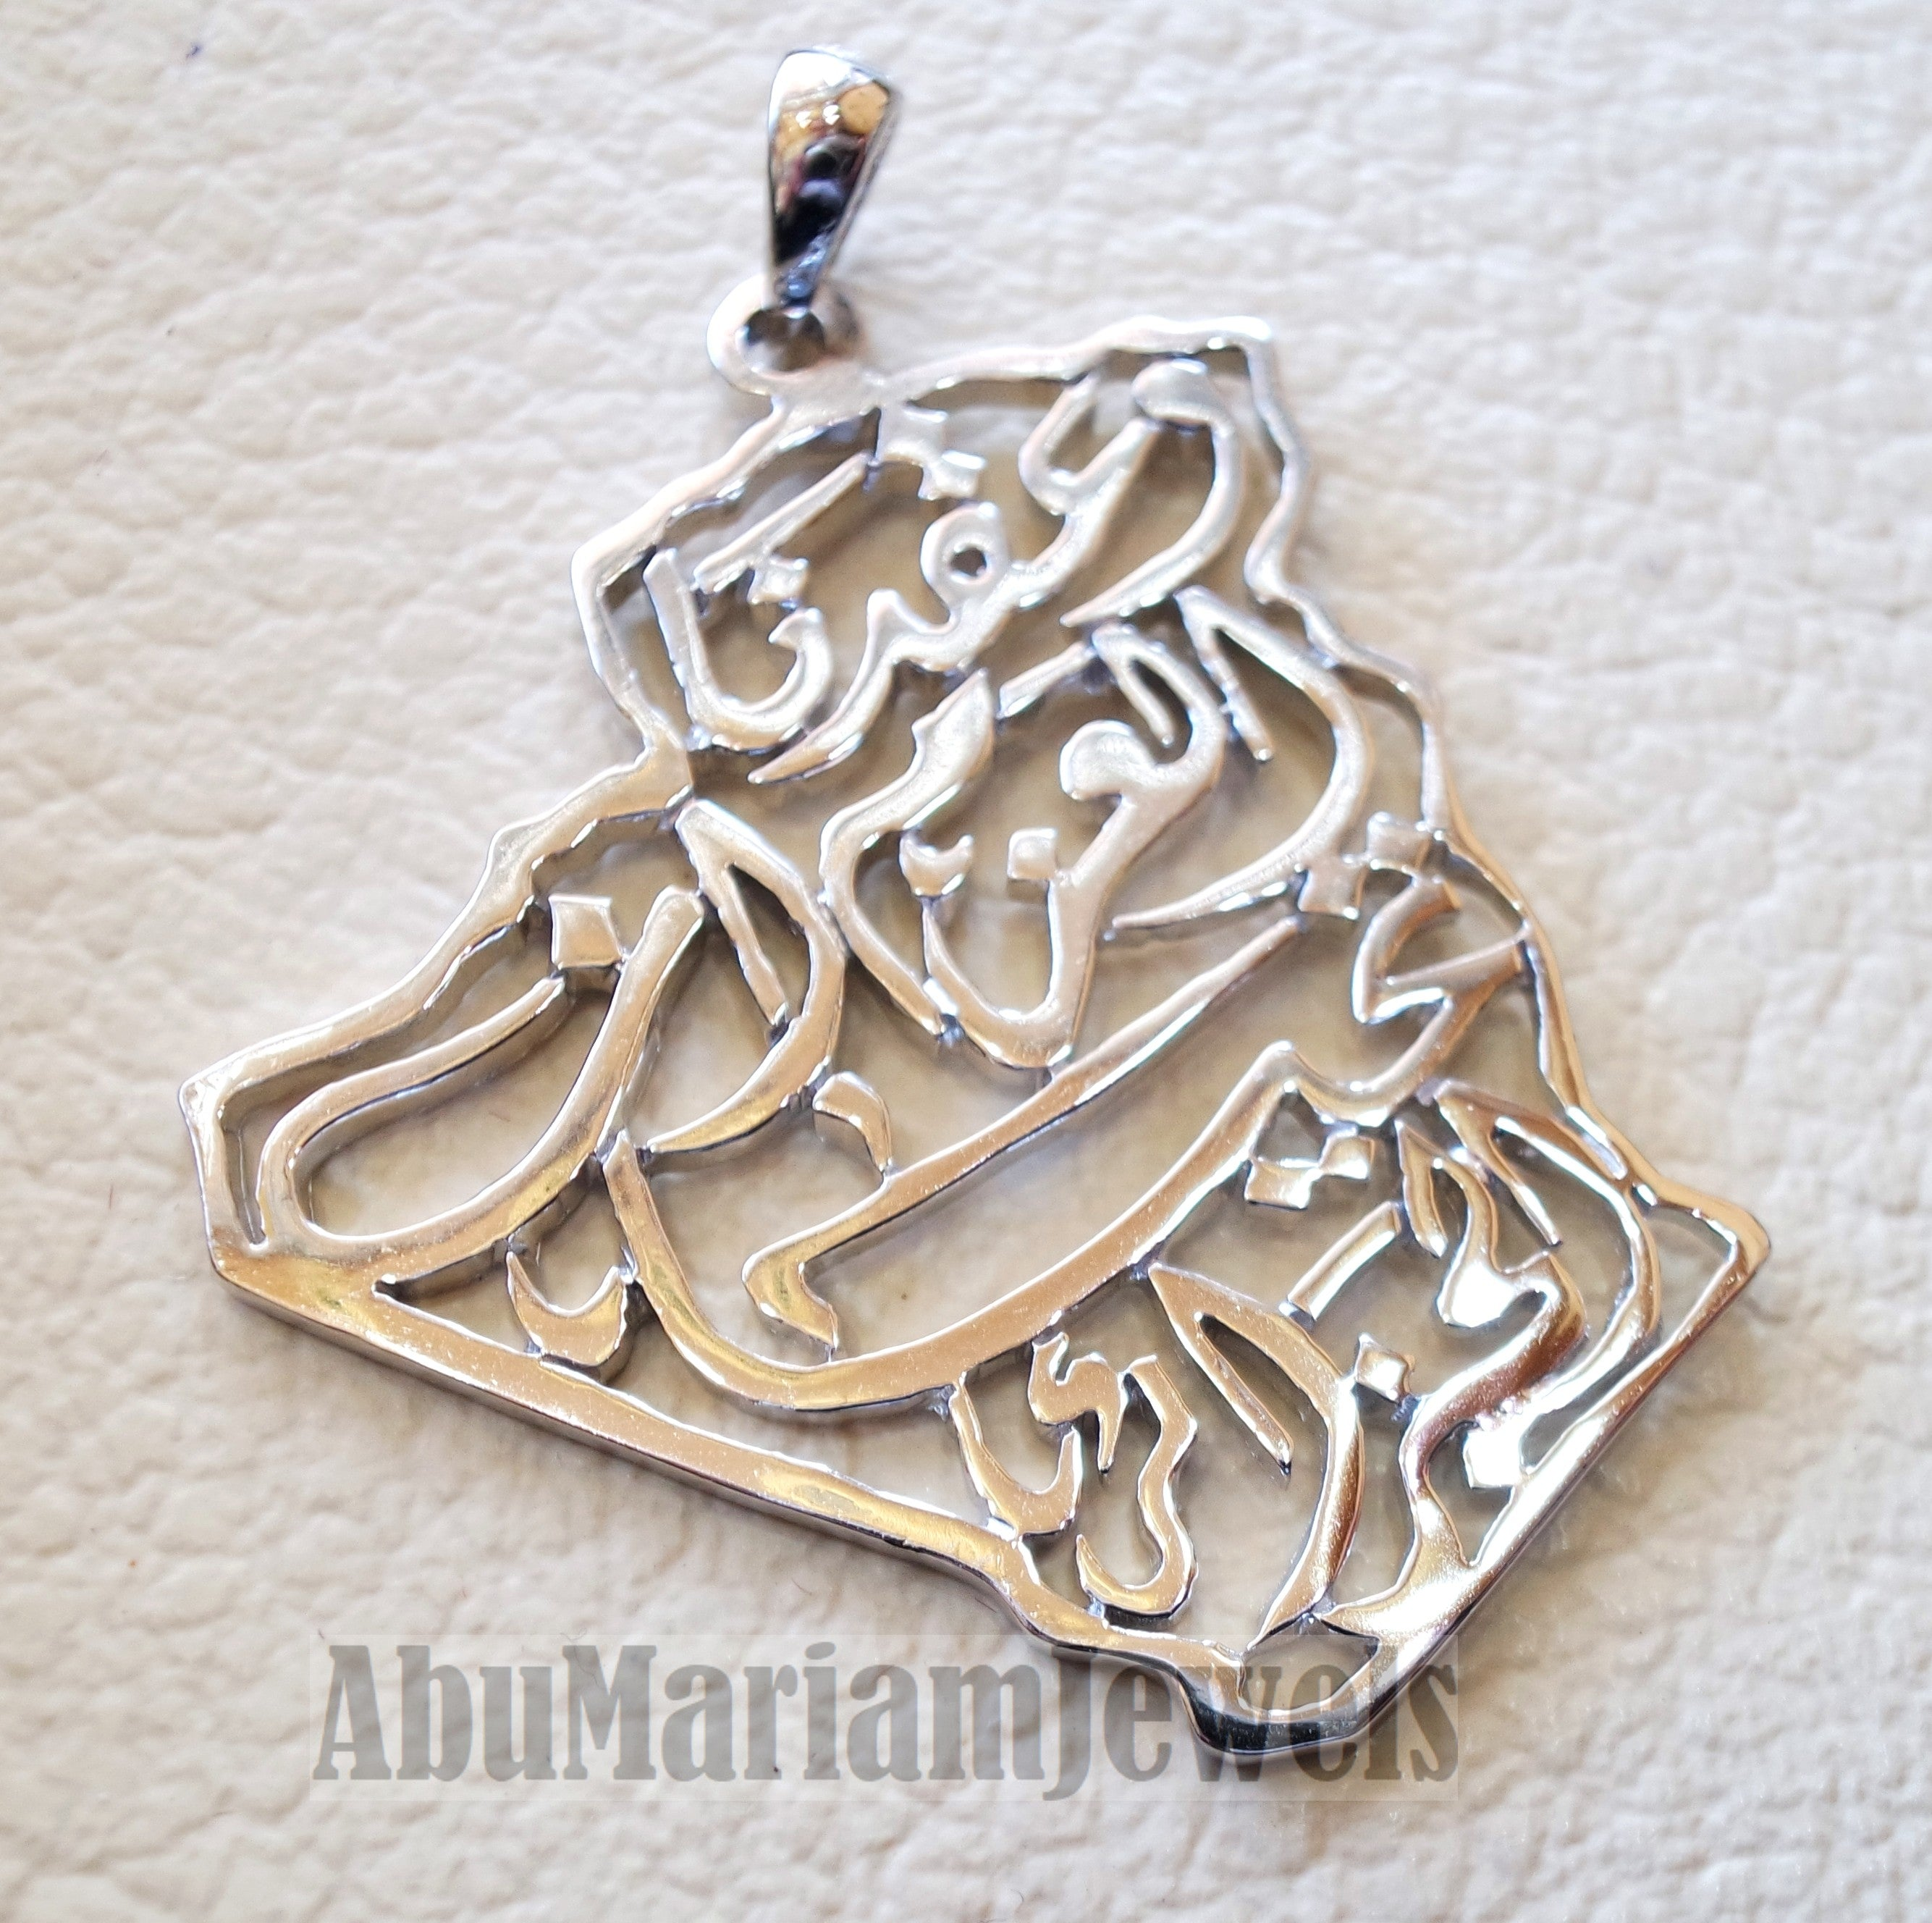 Algeria map Carte de l'Algérie pendant with famous national anthem verse sterling silver 925 jewelry Arabic fast shipping خريطة الجزائر